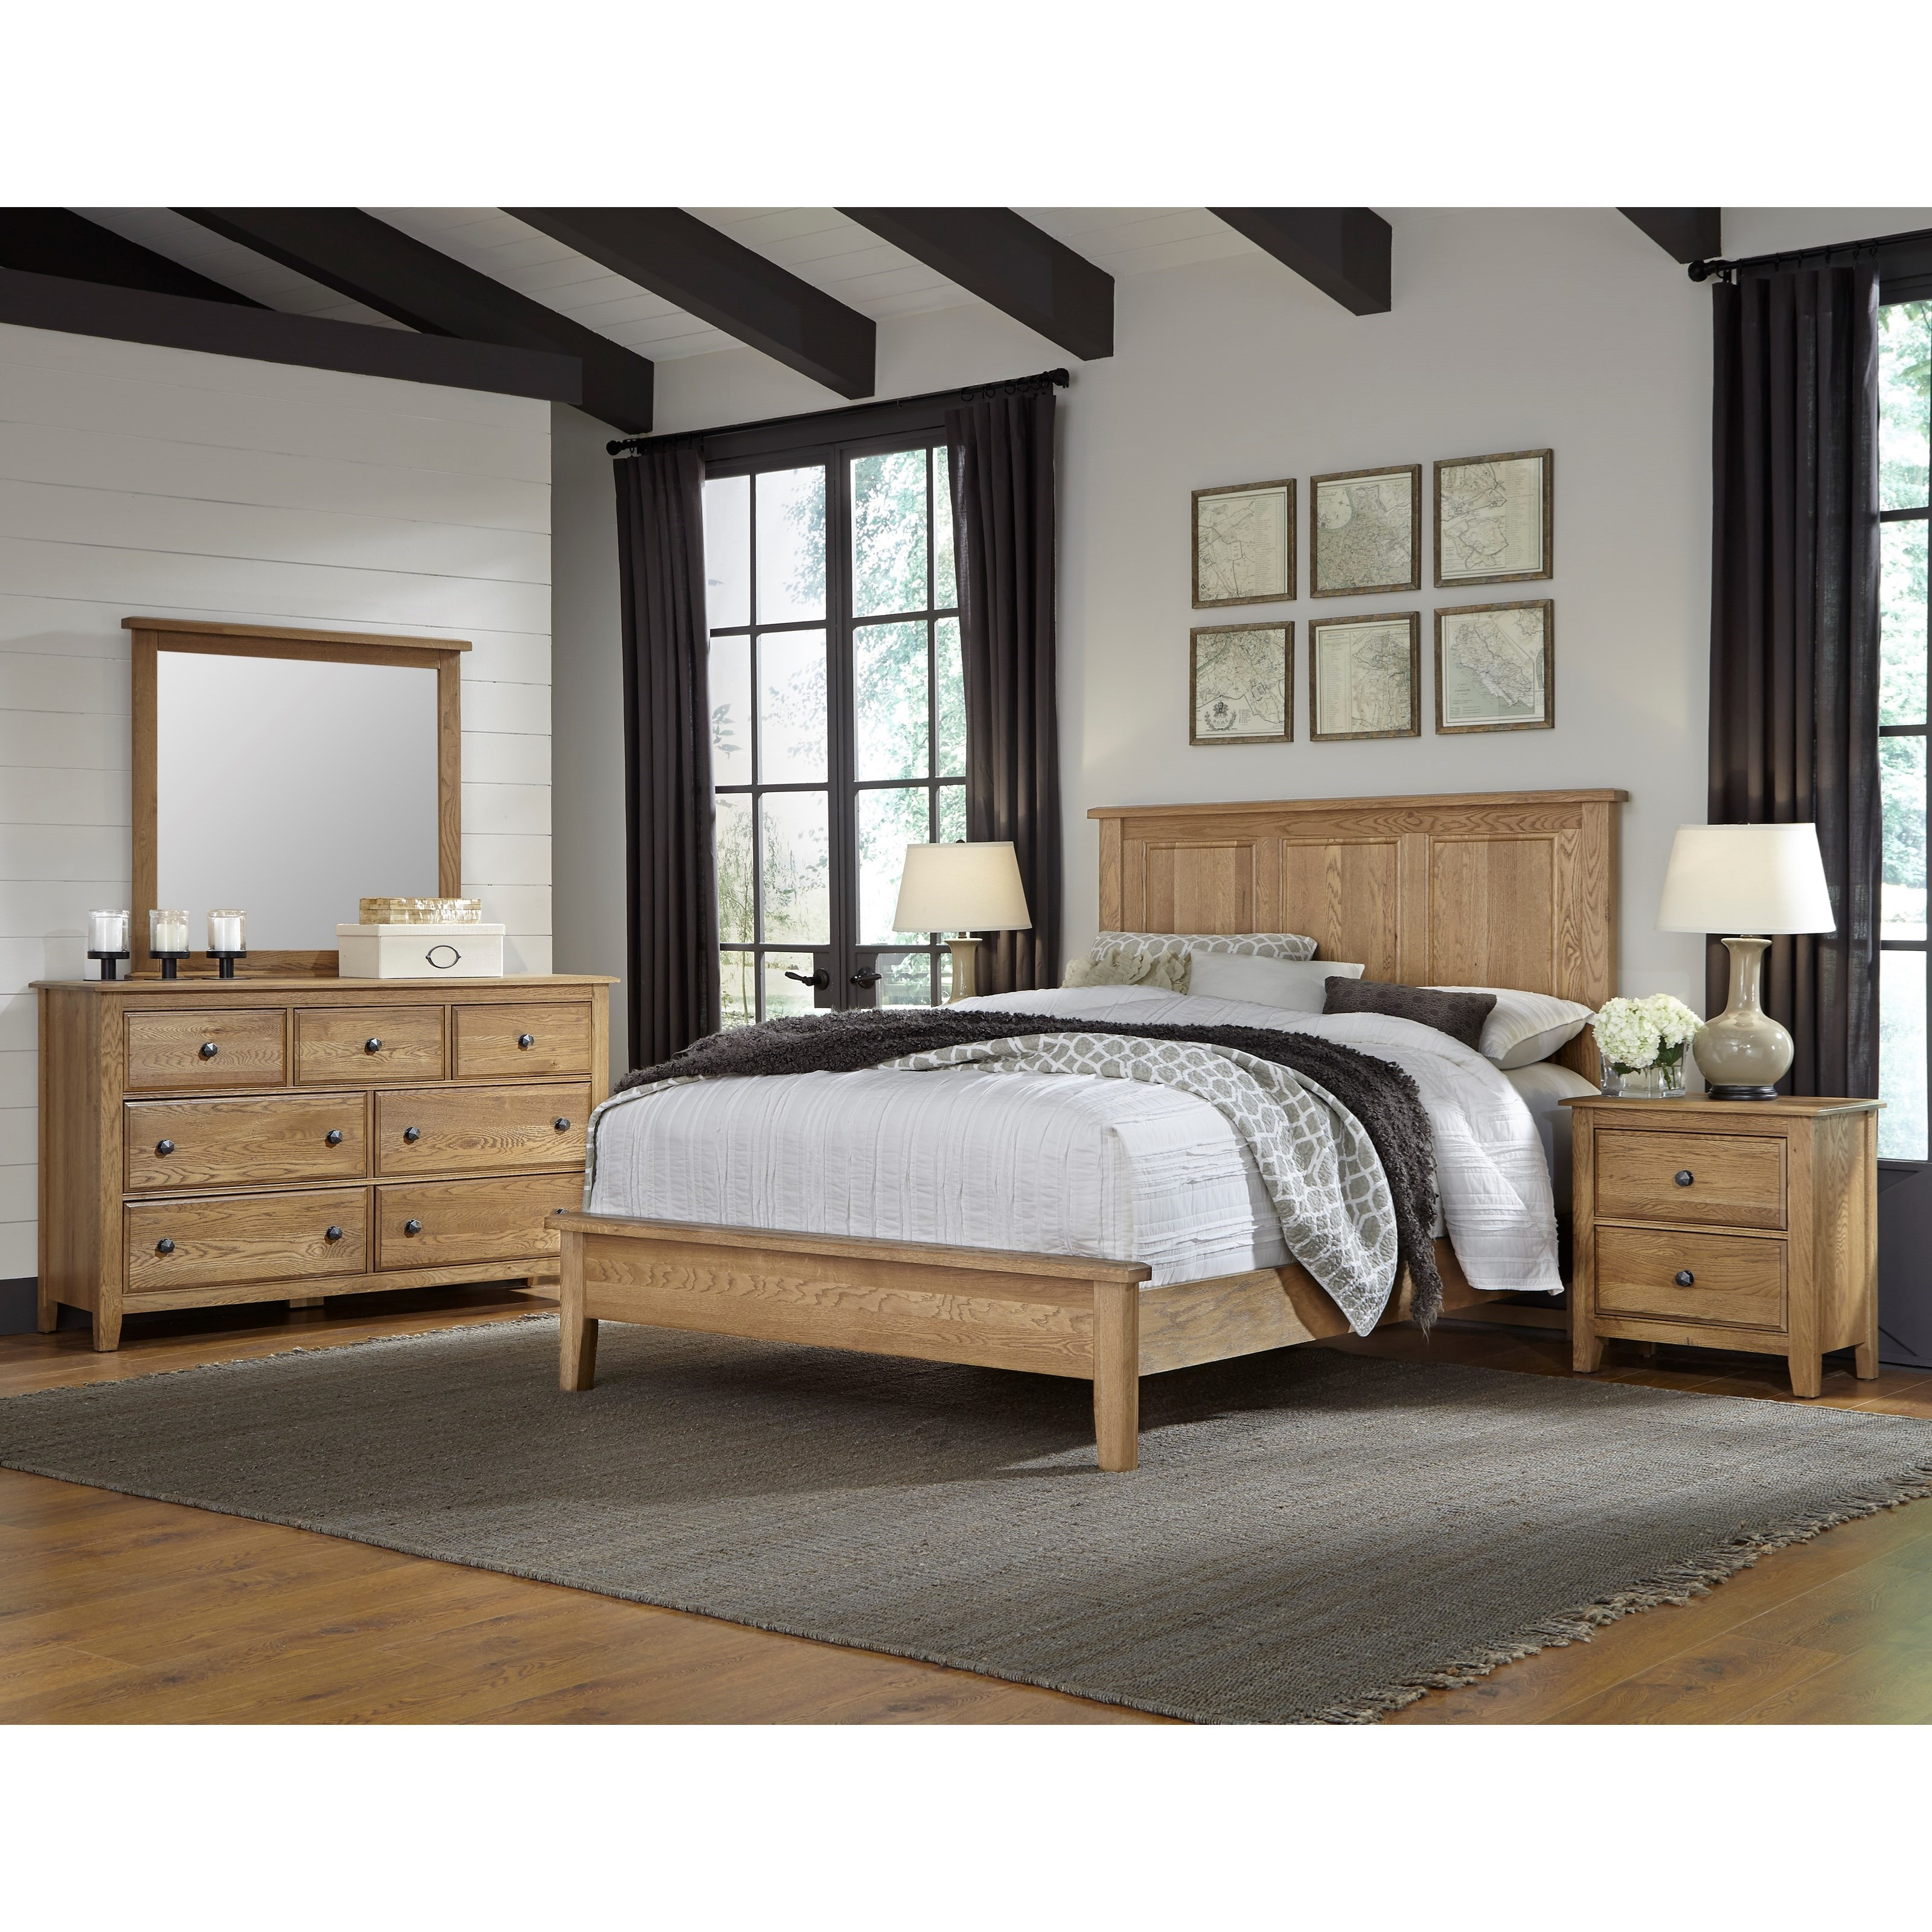 Artisan & Post Artisan Choices Queen Bedroom Group - Item Number: 105 Q Bedroom Group 1